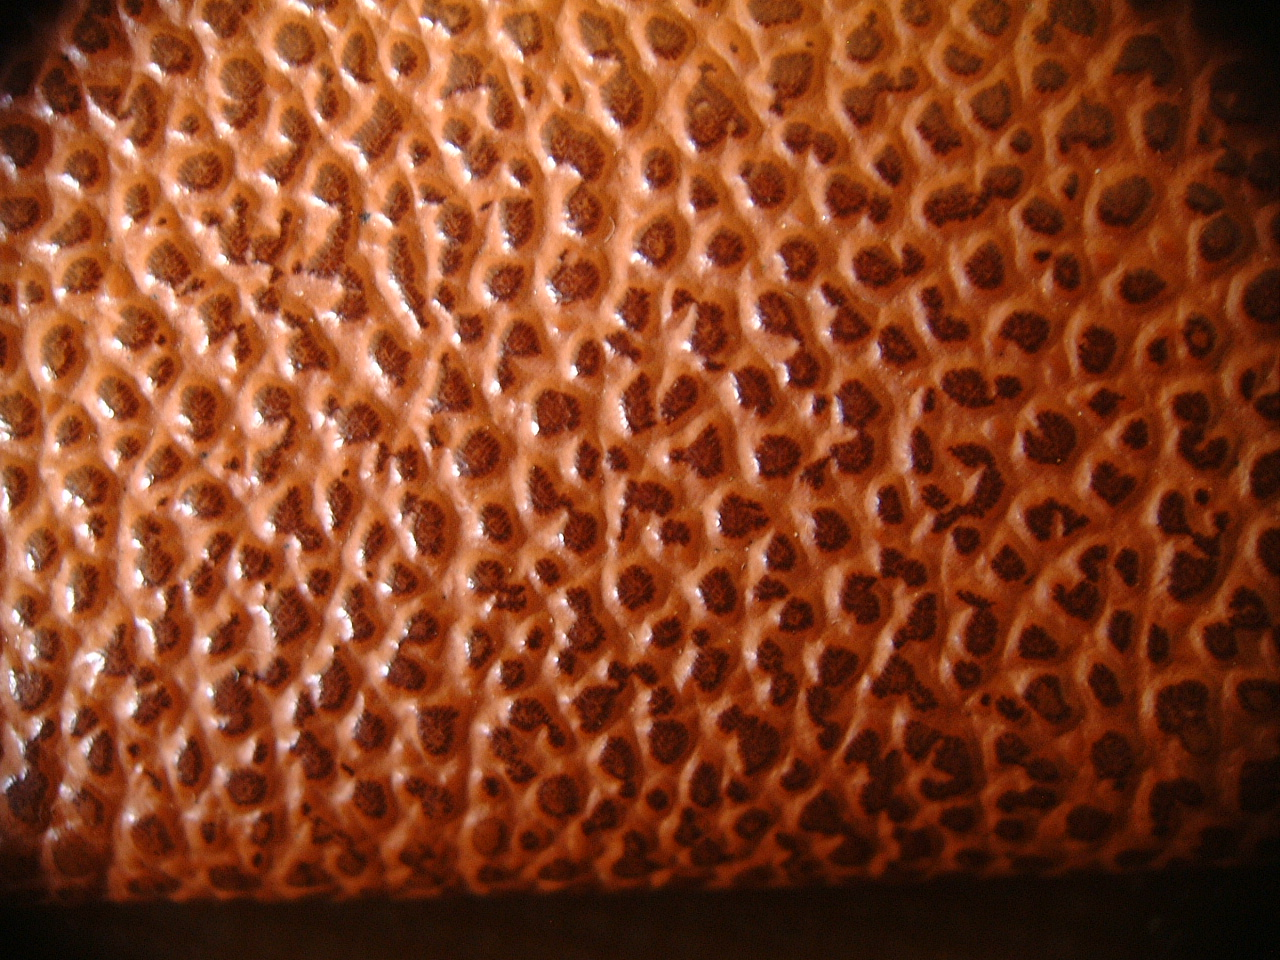 maartent closeup of leather brown skin